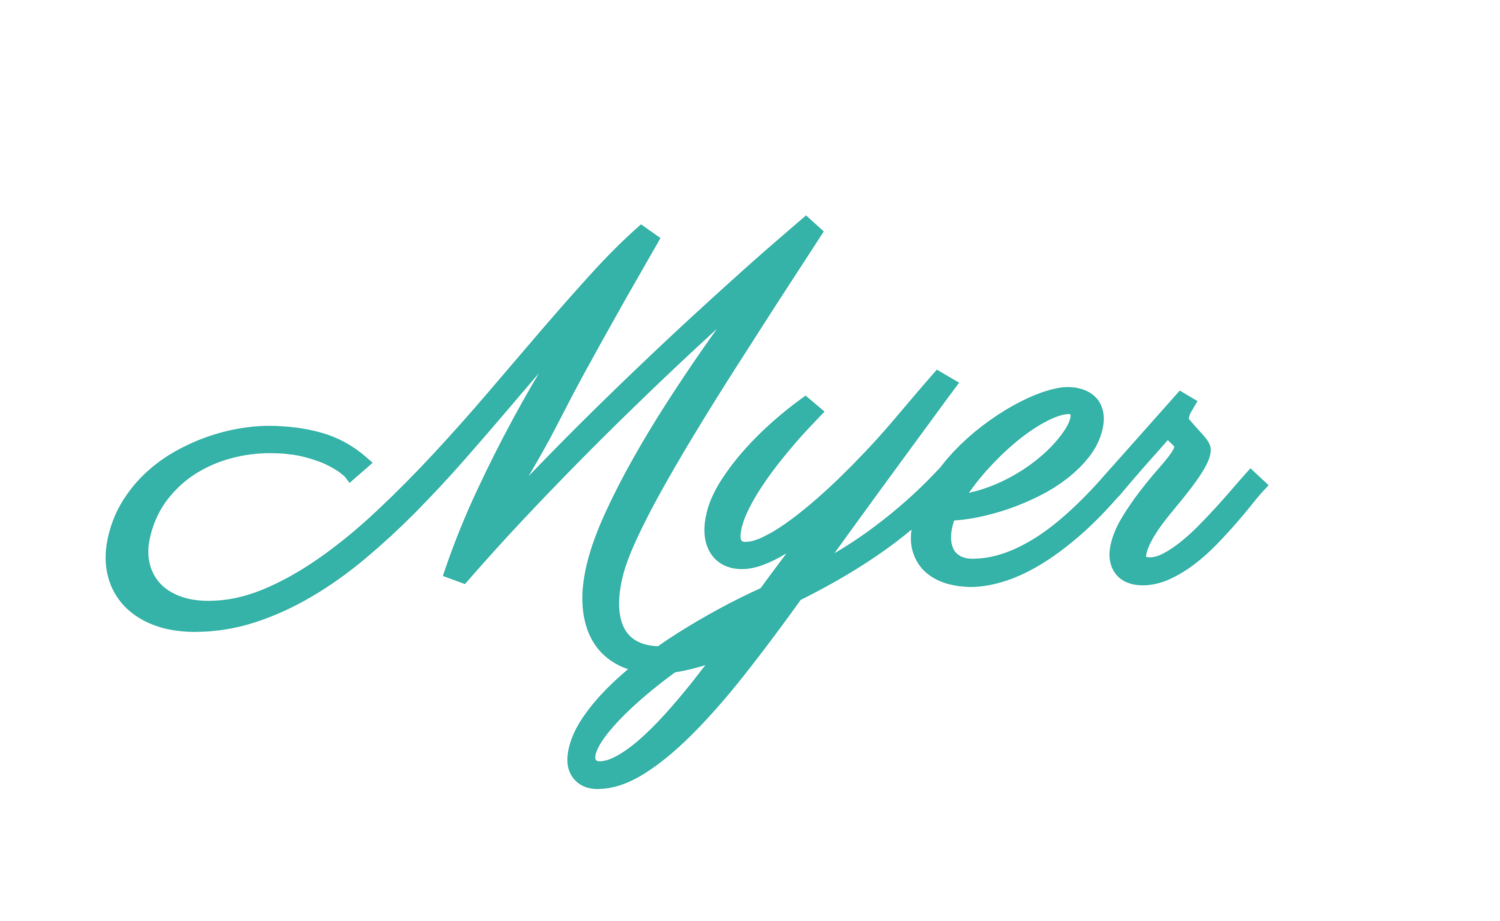 Myer Resumes | Professional Resume Writers & Writing Services